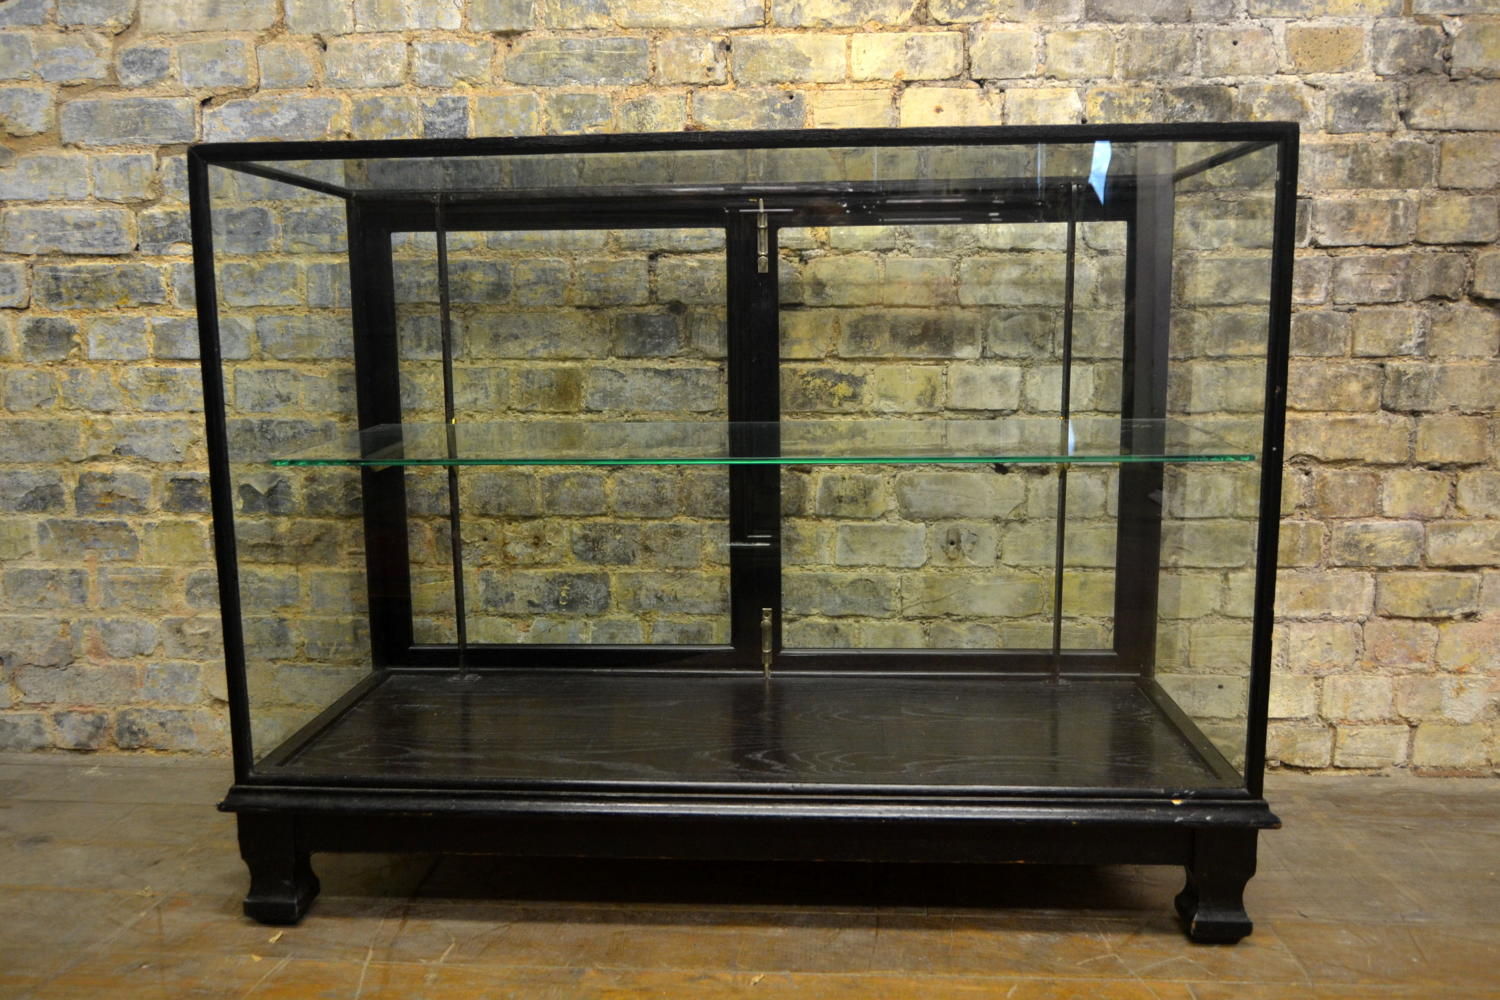 1920s Black Shop Display Counter